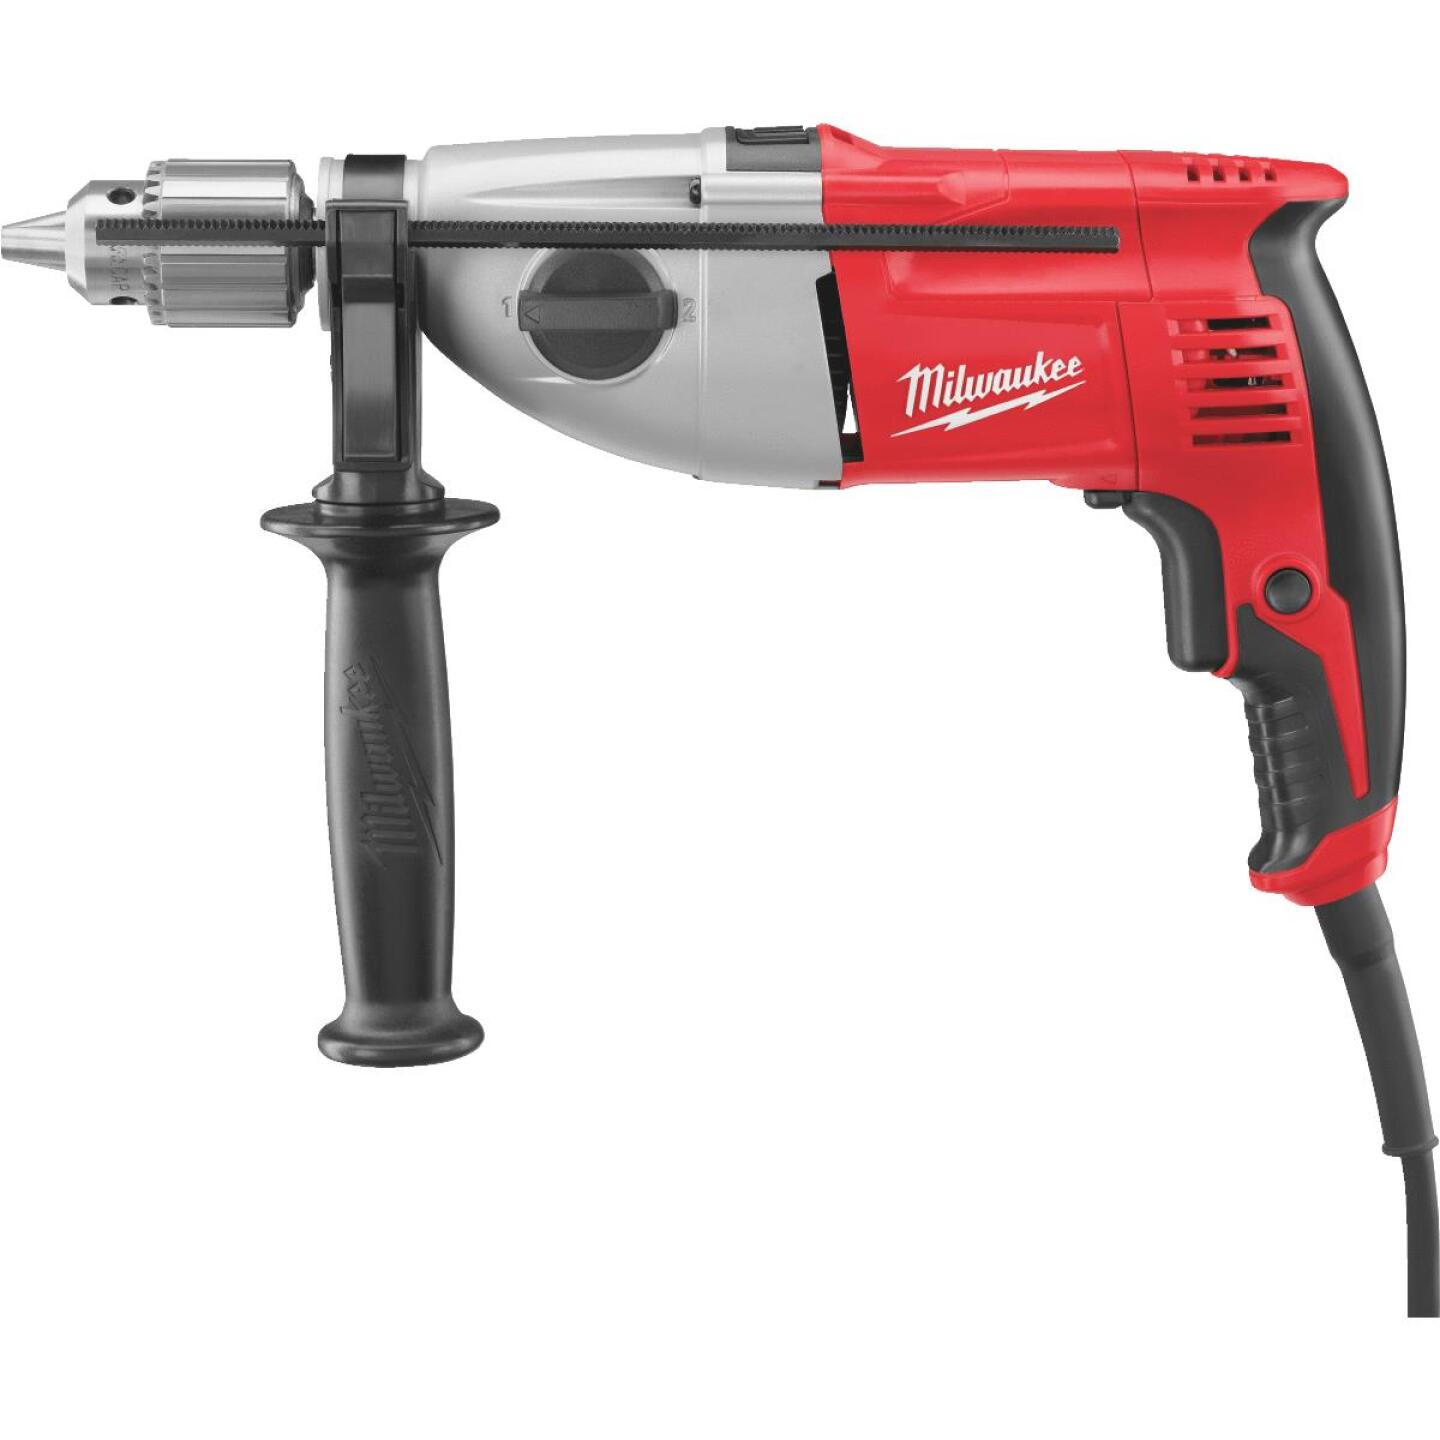 Milwaukee 1/2 In. Keyed 7.5-Amp Dual Torque Electric Hammer Drill Image 1